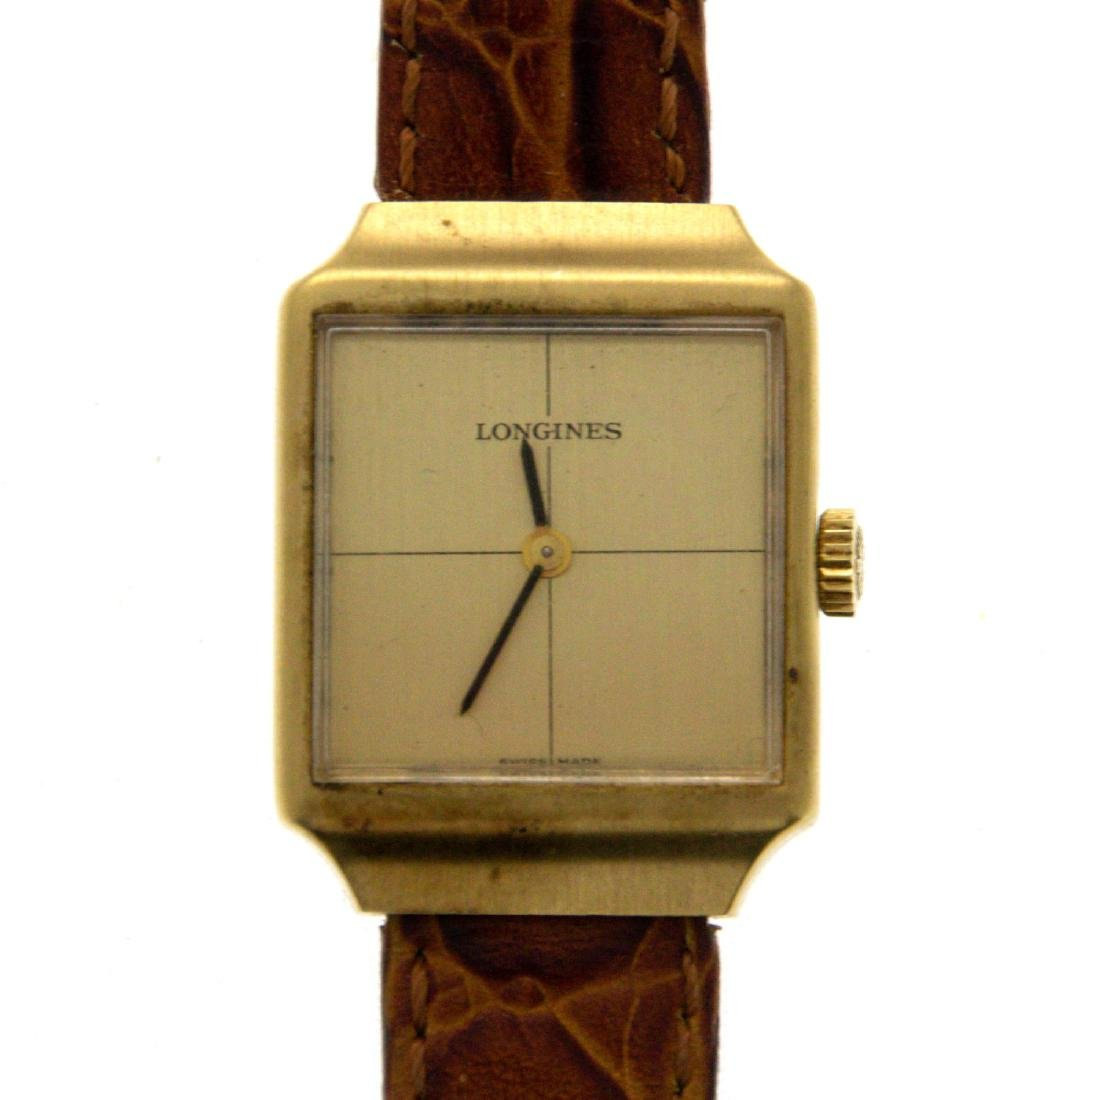 Longines Wrist Watch. - 2